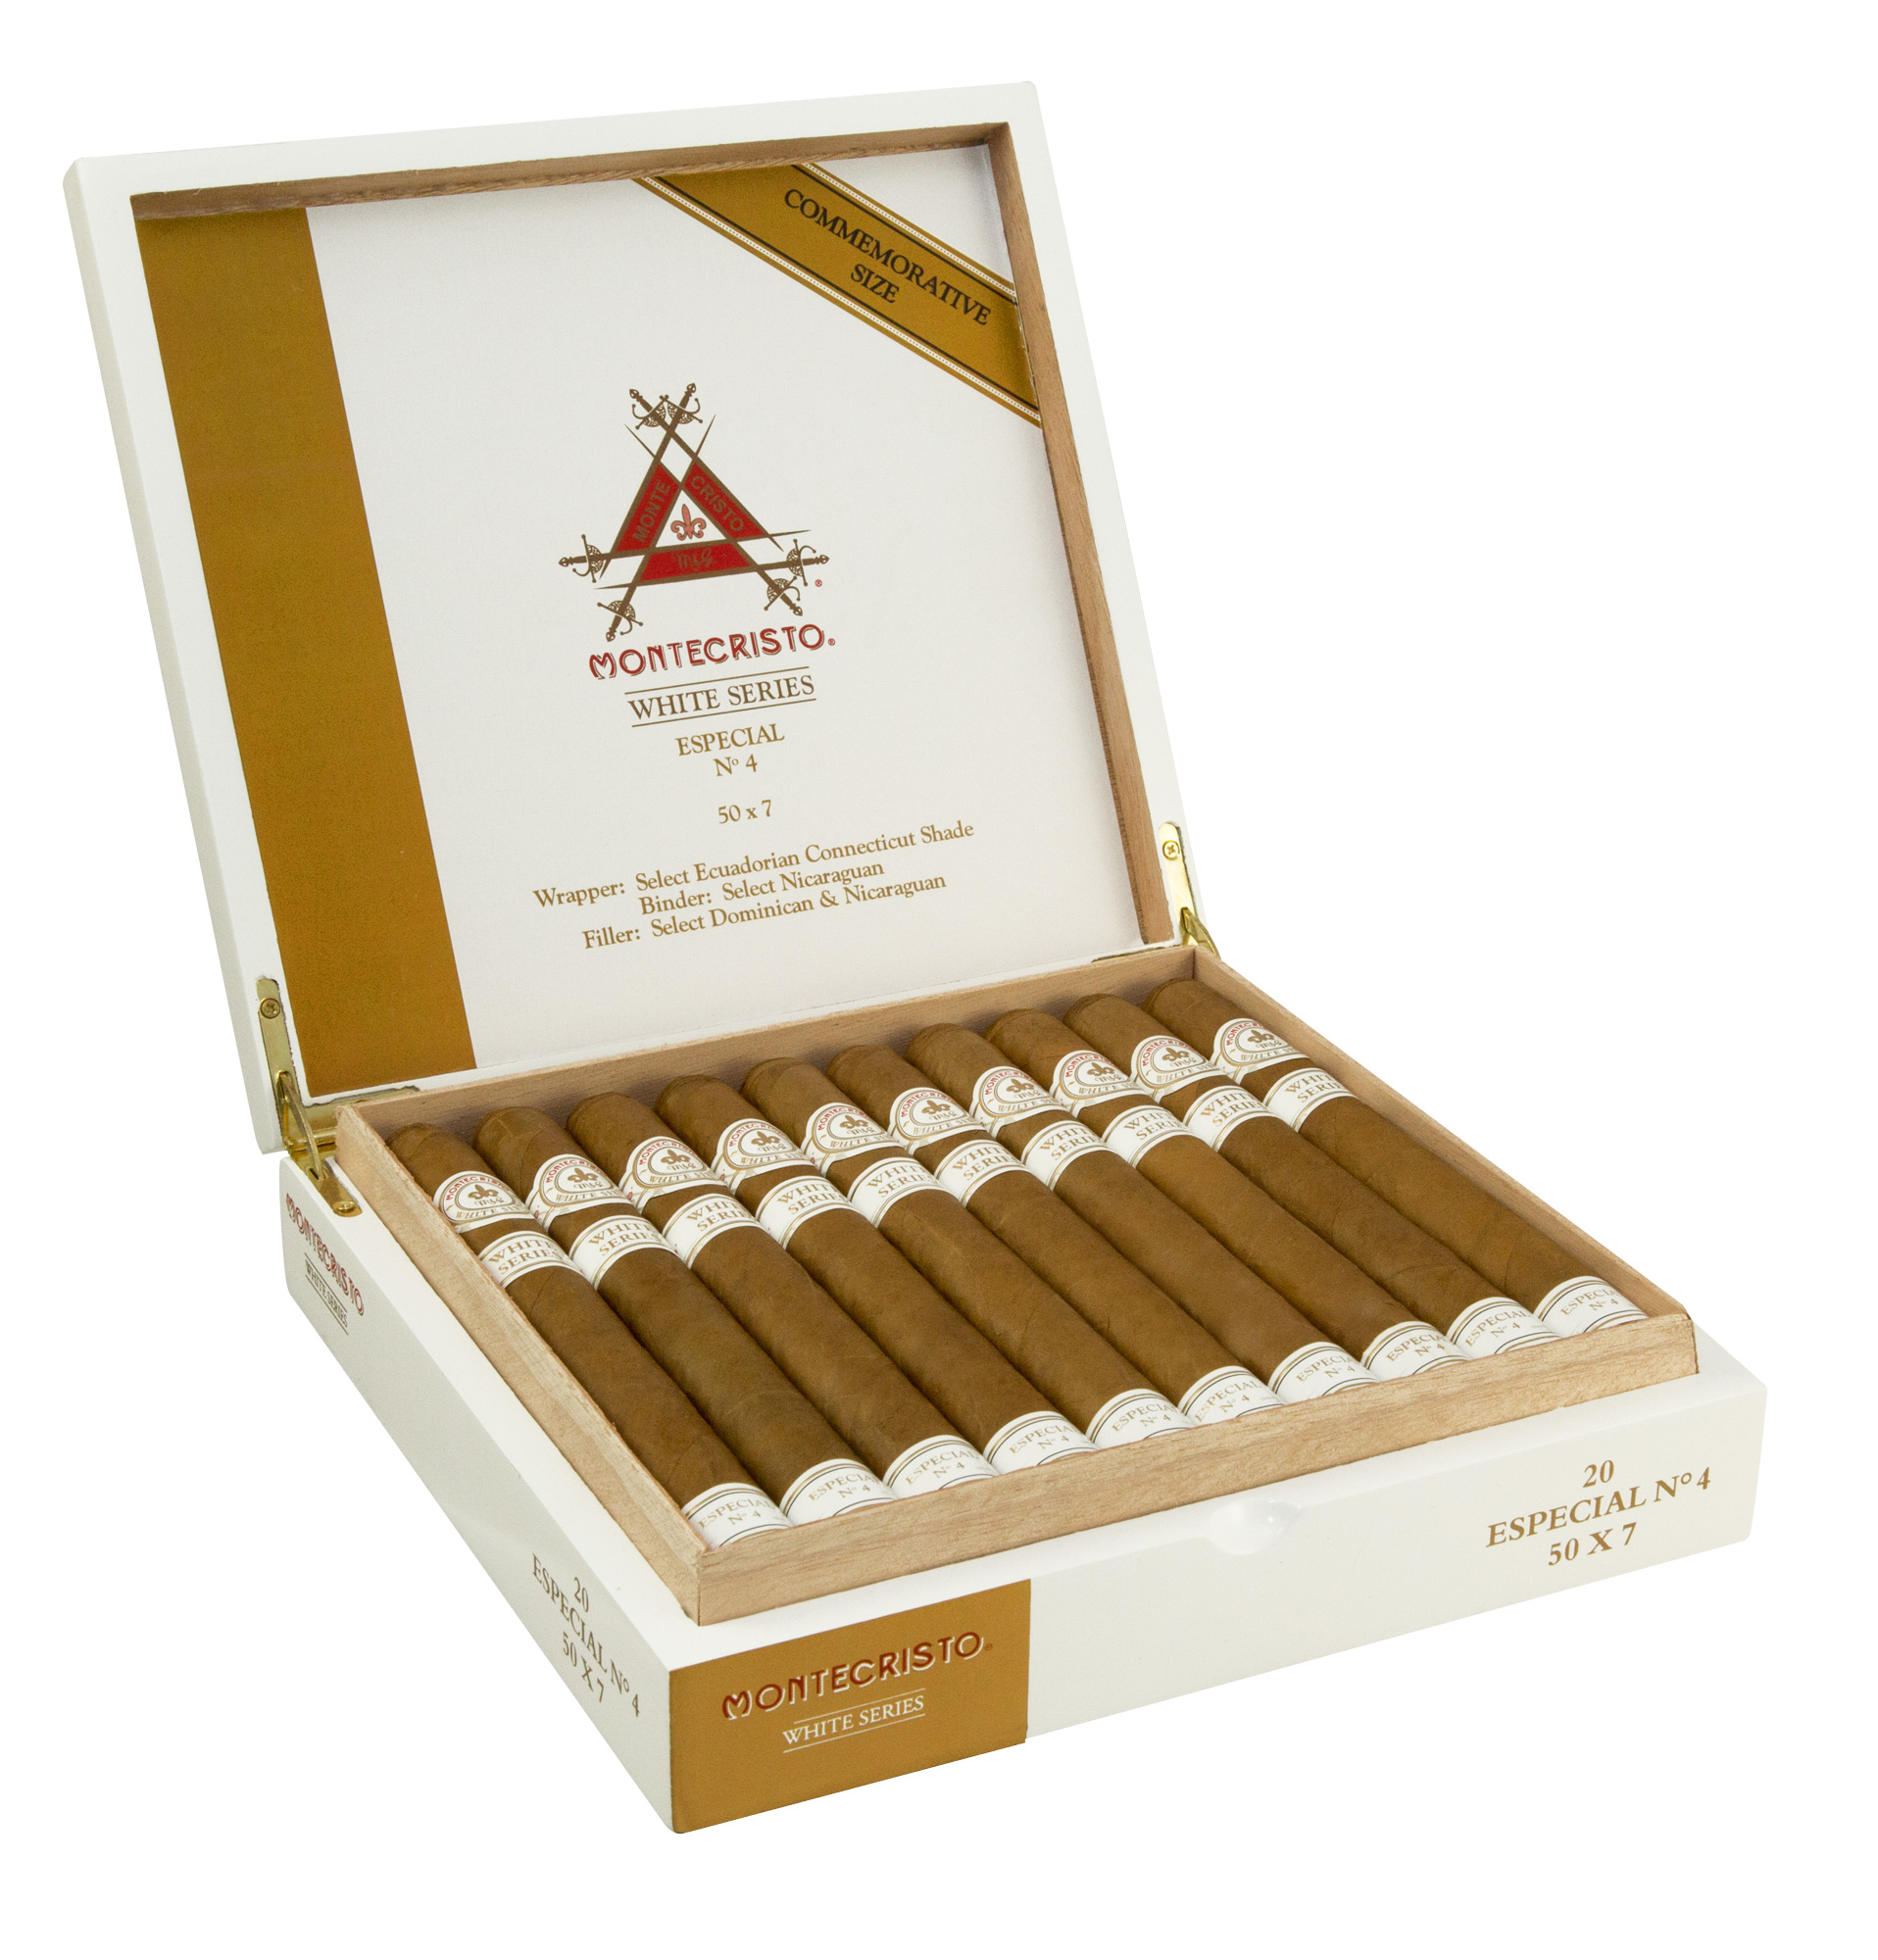 Montecristo_White_Series_Especial_No.4_Open